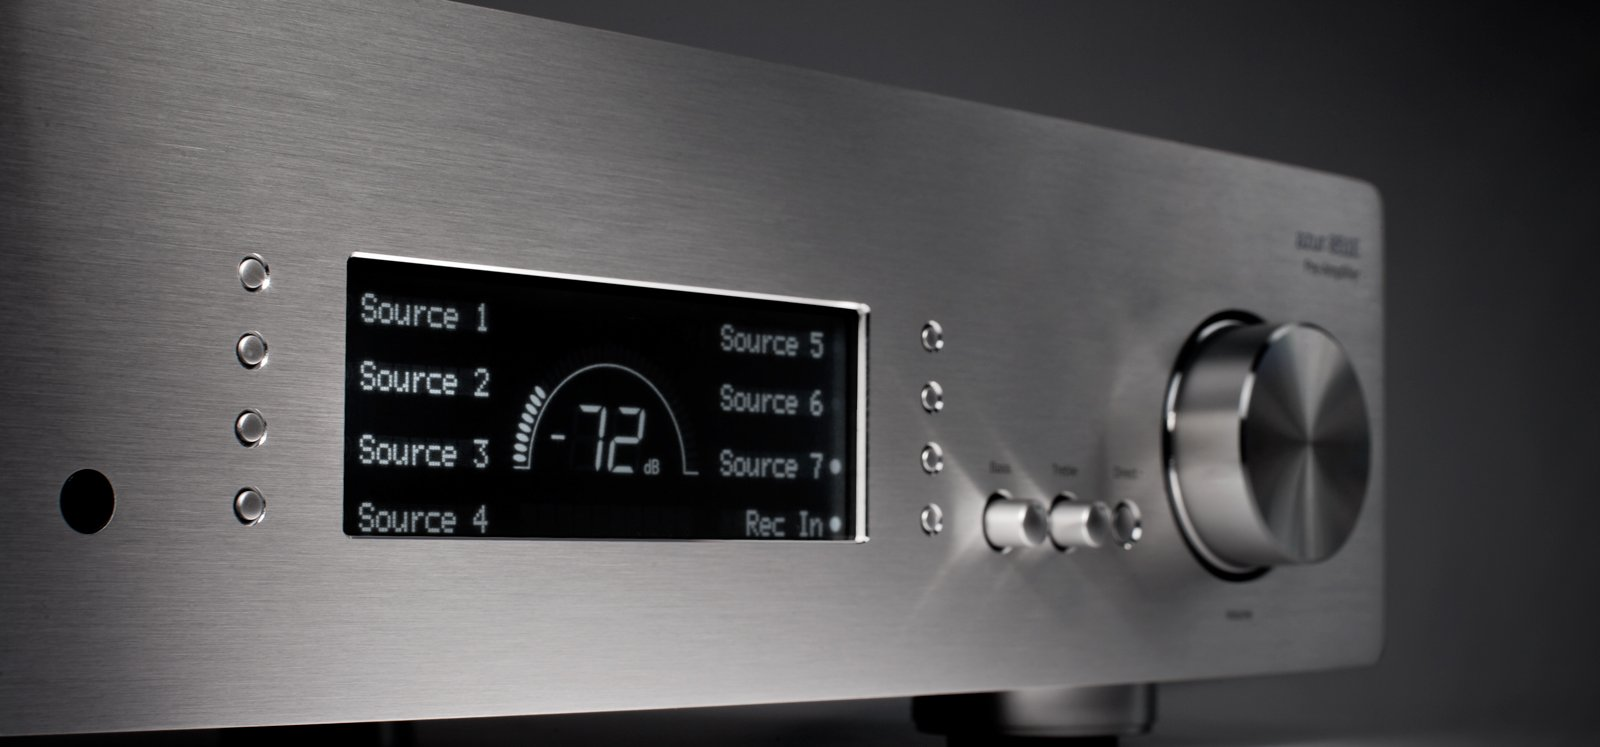 Azur 851e Preamplifier Cambridge Audio Thats Exactly What The Does And Coupled With Its Solid State Volume Control It Retains Signal Purity Precision Even At Lowest